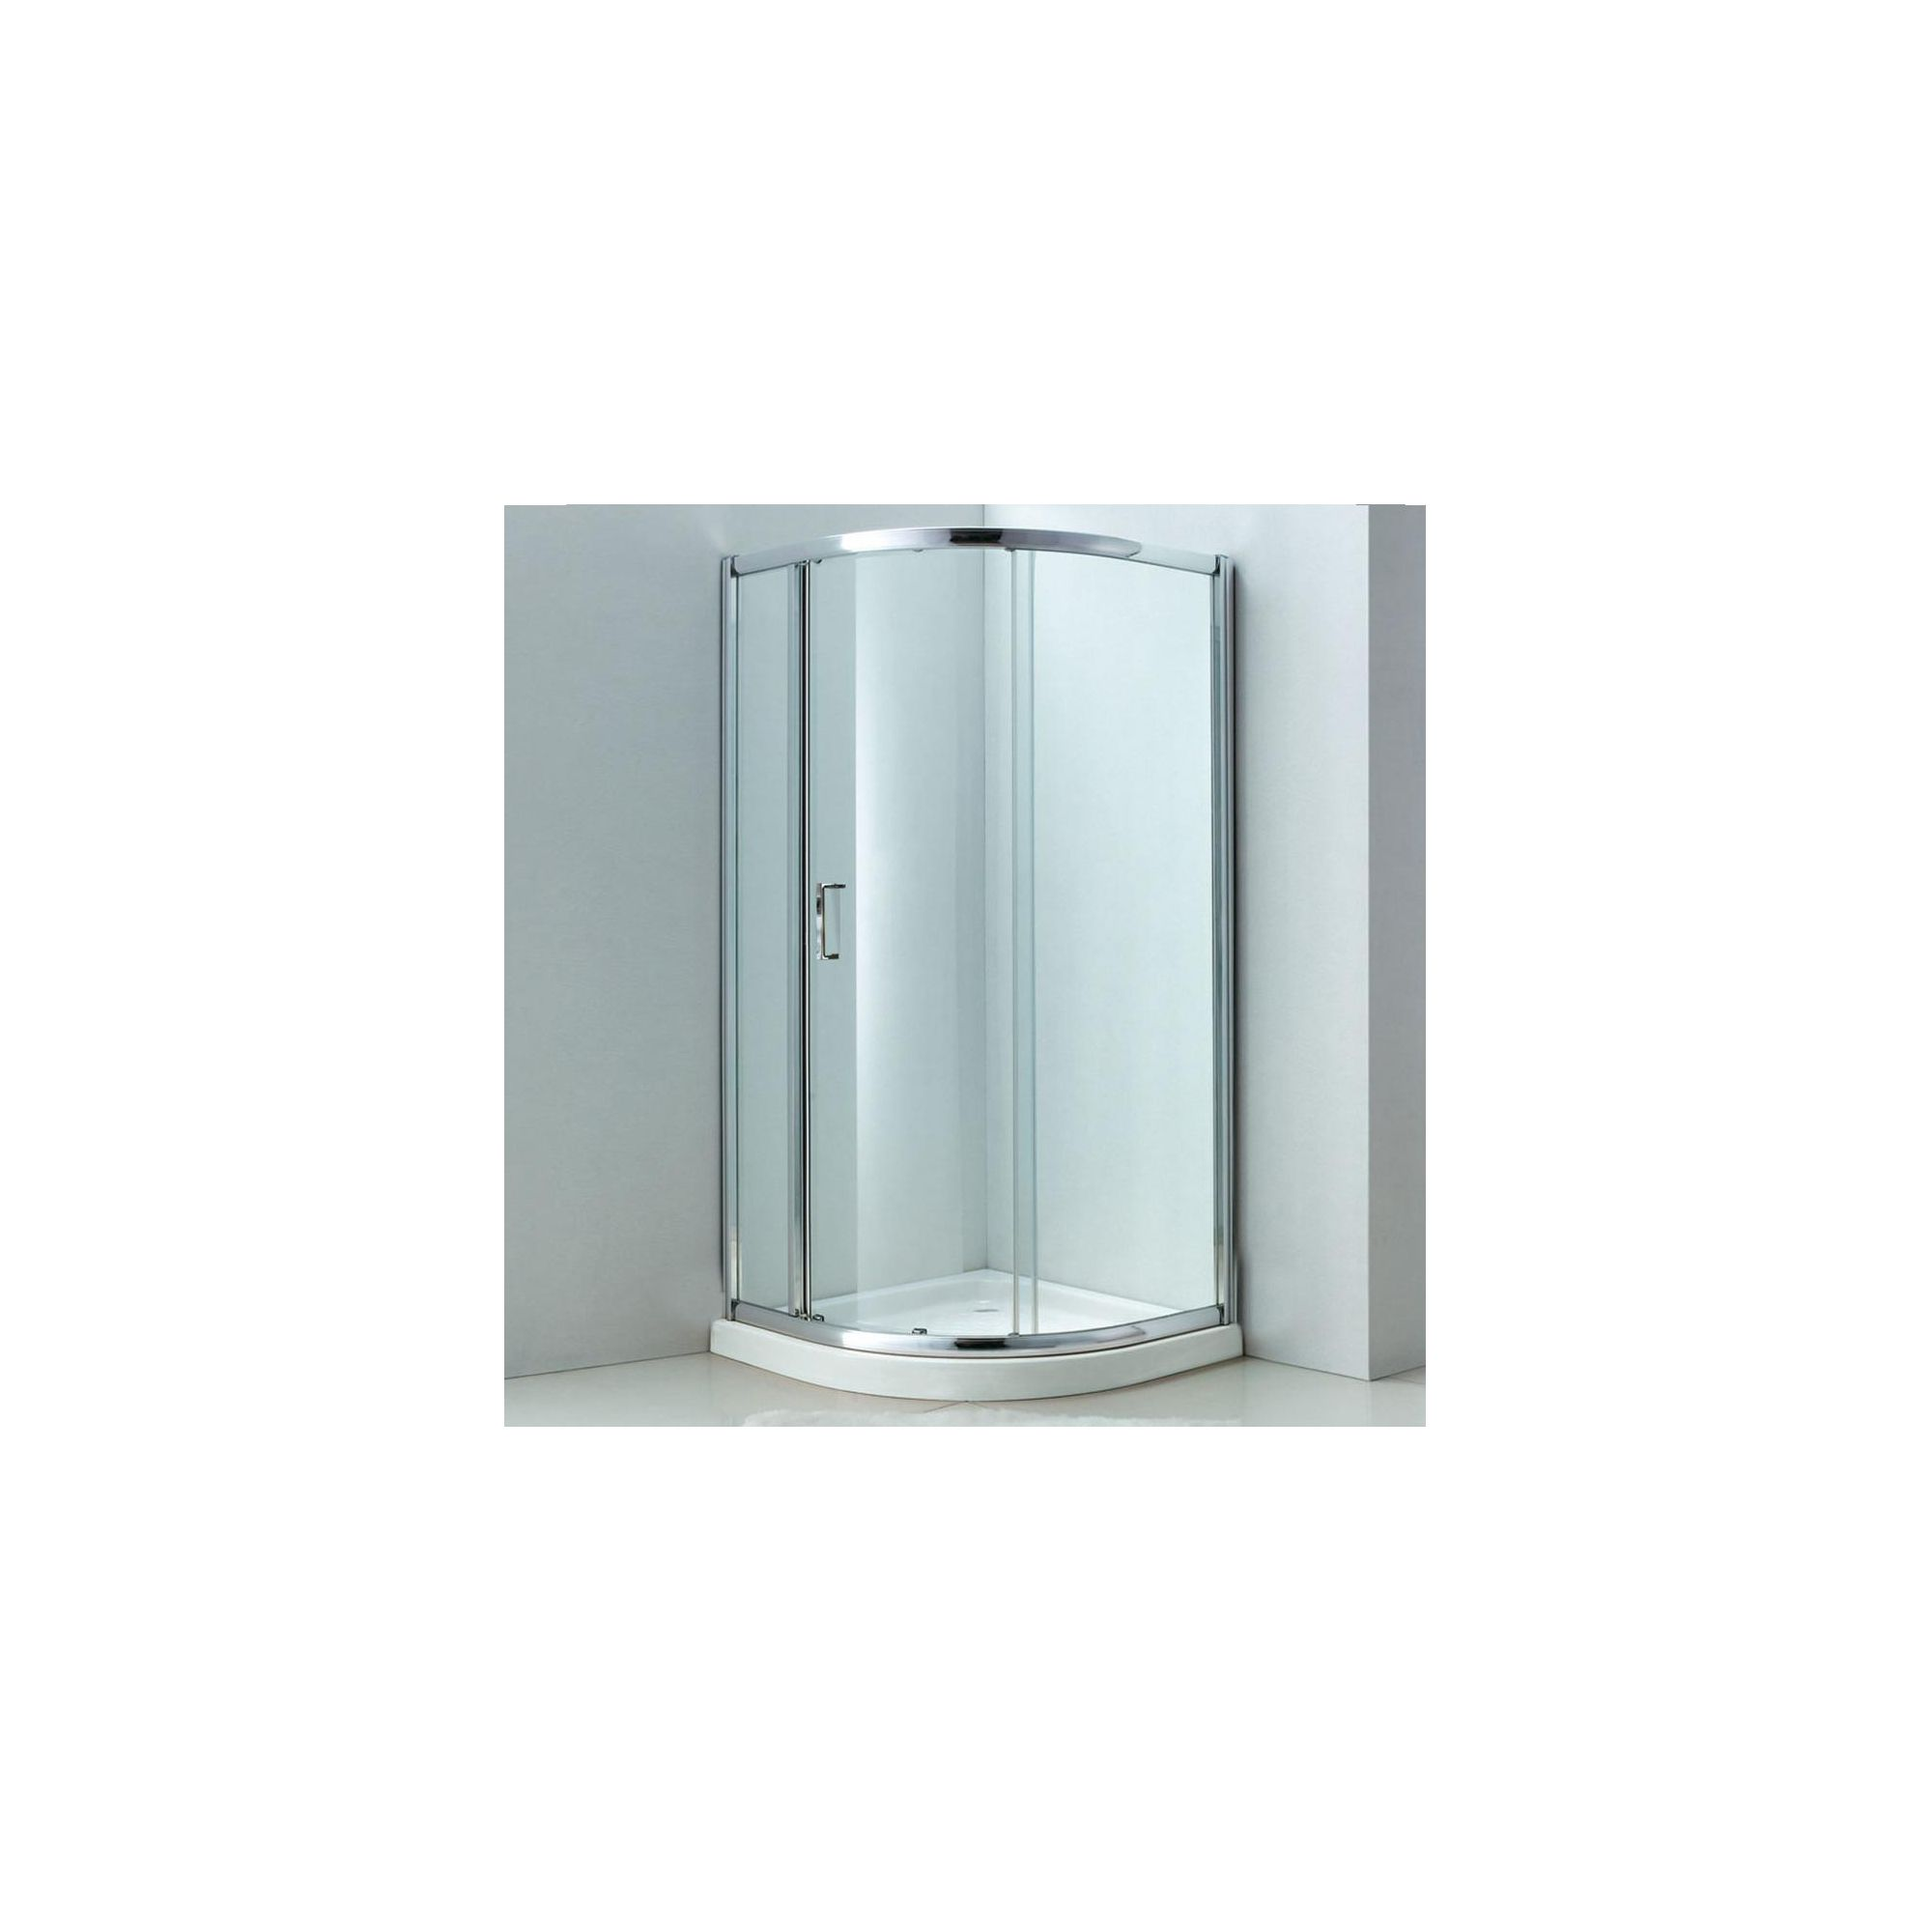 Duchy Style Single Offset Quadrant Door Shower Enclosure, 1000mm x 800mm, 6mm Glass, Low Profile Tray, Left Handed at Tescos Direct